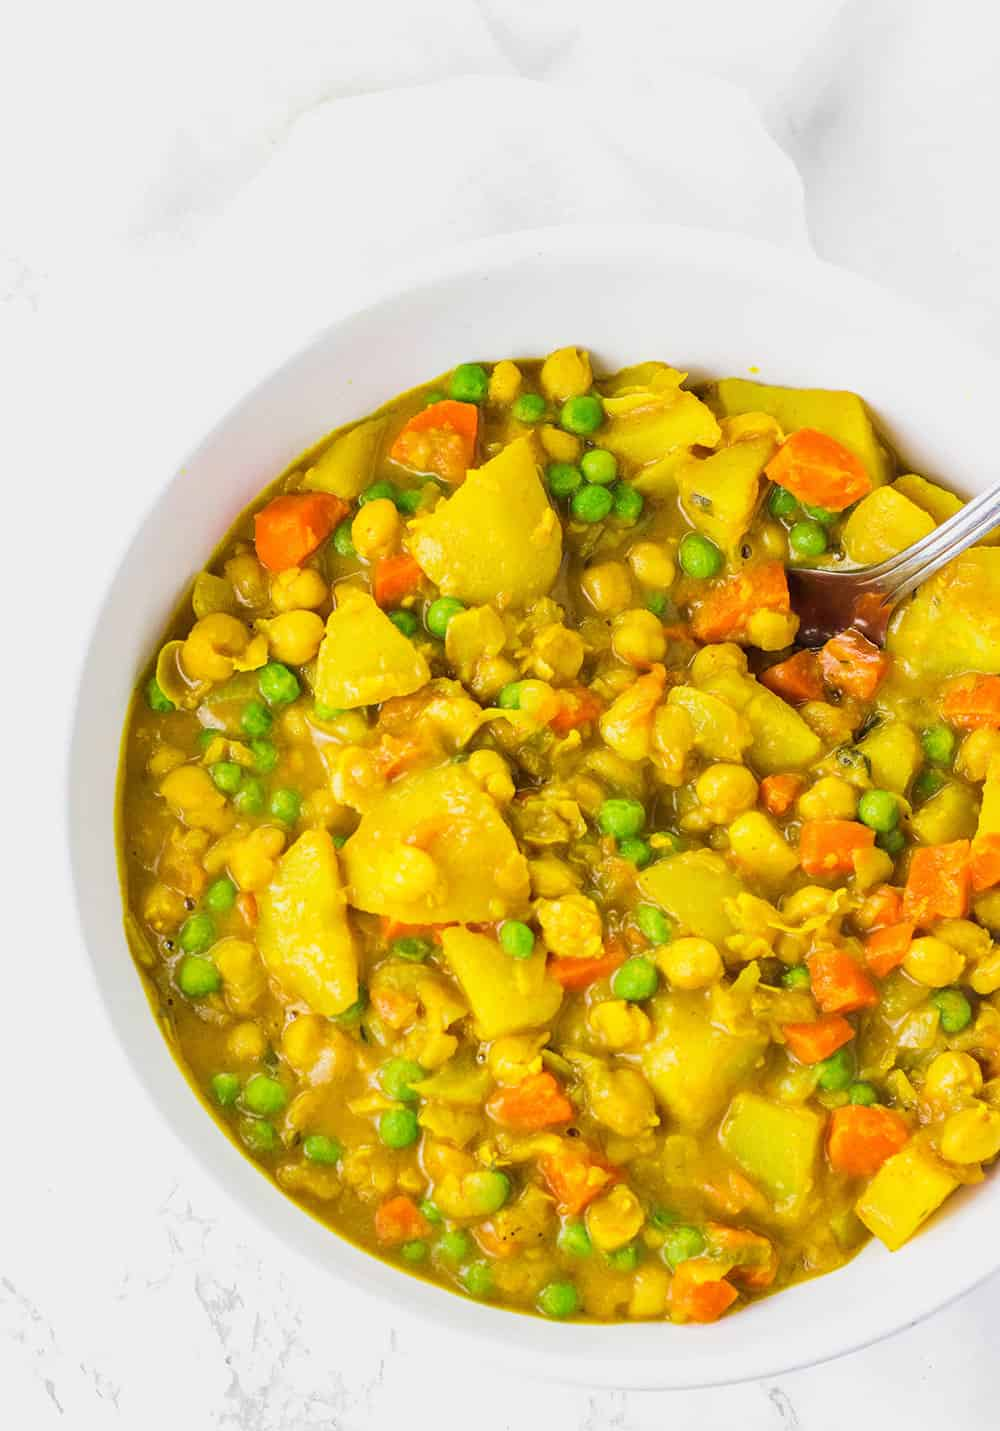 Jamaican Spicy Potato Curry (Vegan), Chickpea, Carrot and Green Peas Curry in a white bowl